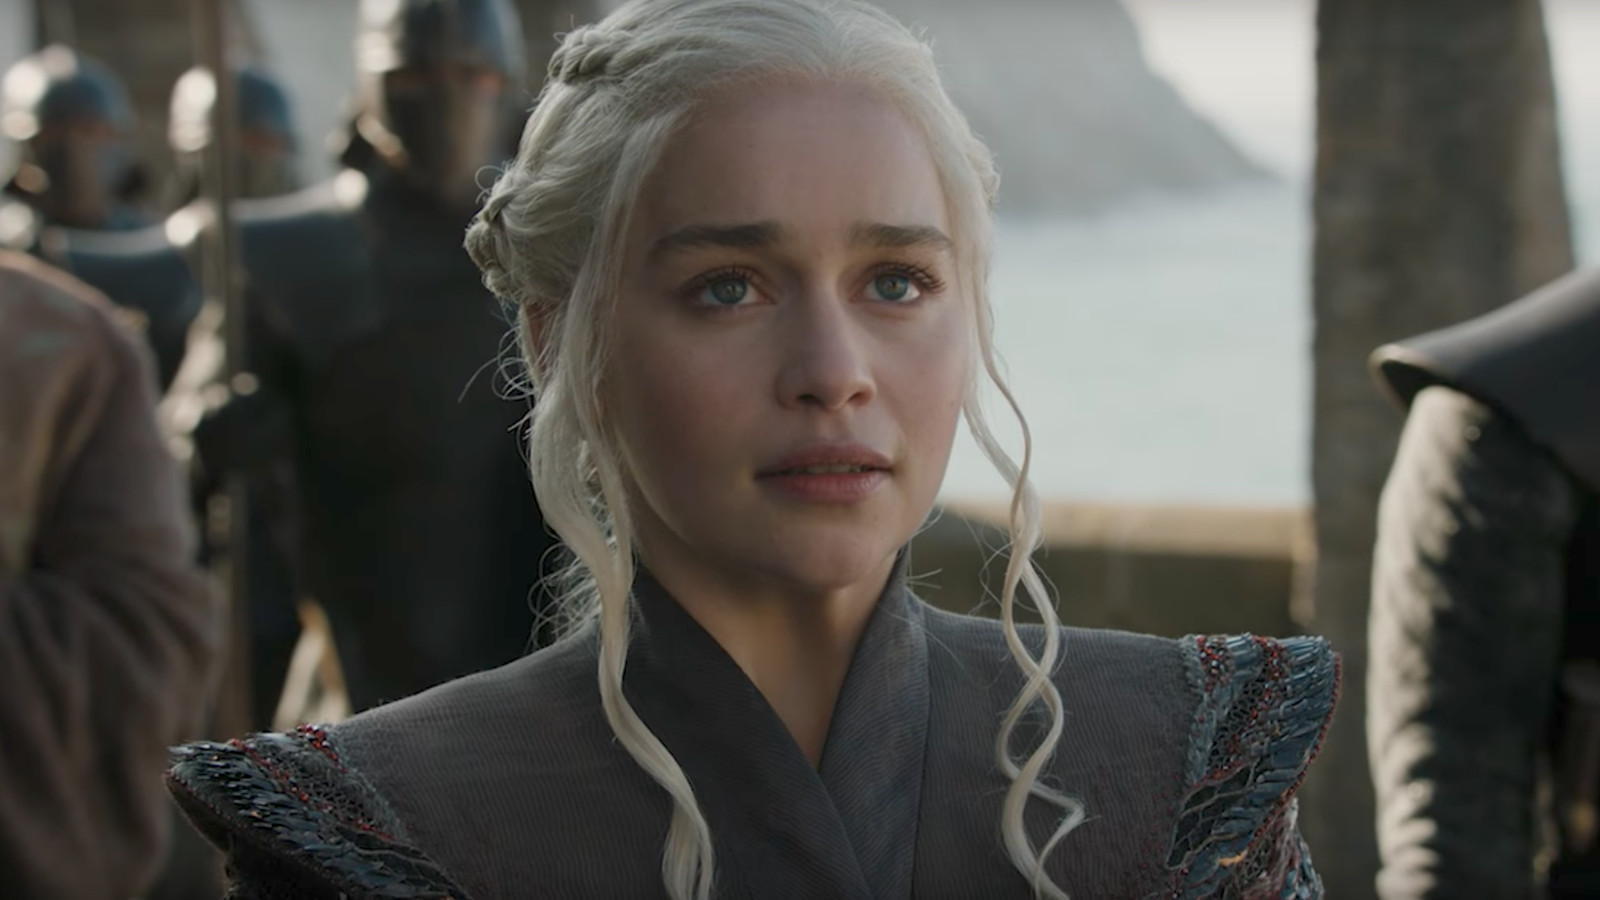 Hulu now offers HBO - just in time for Game of Thrones premiere - The Verge Hulu now offers HBO - just in time for Game of Thrones premiere - 웹